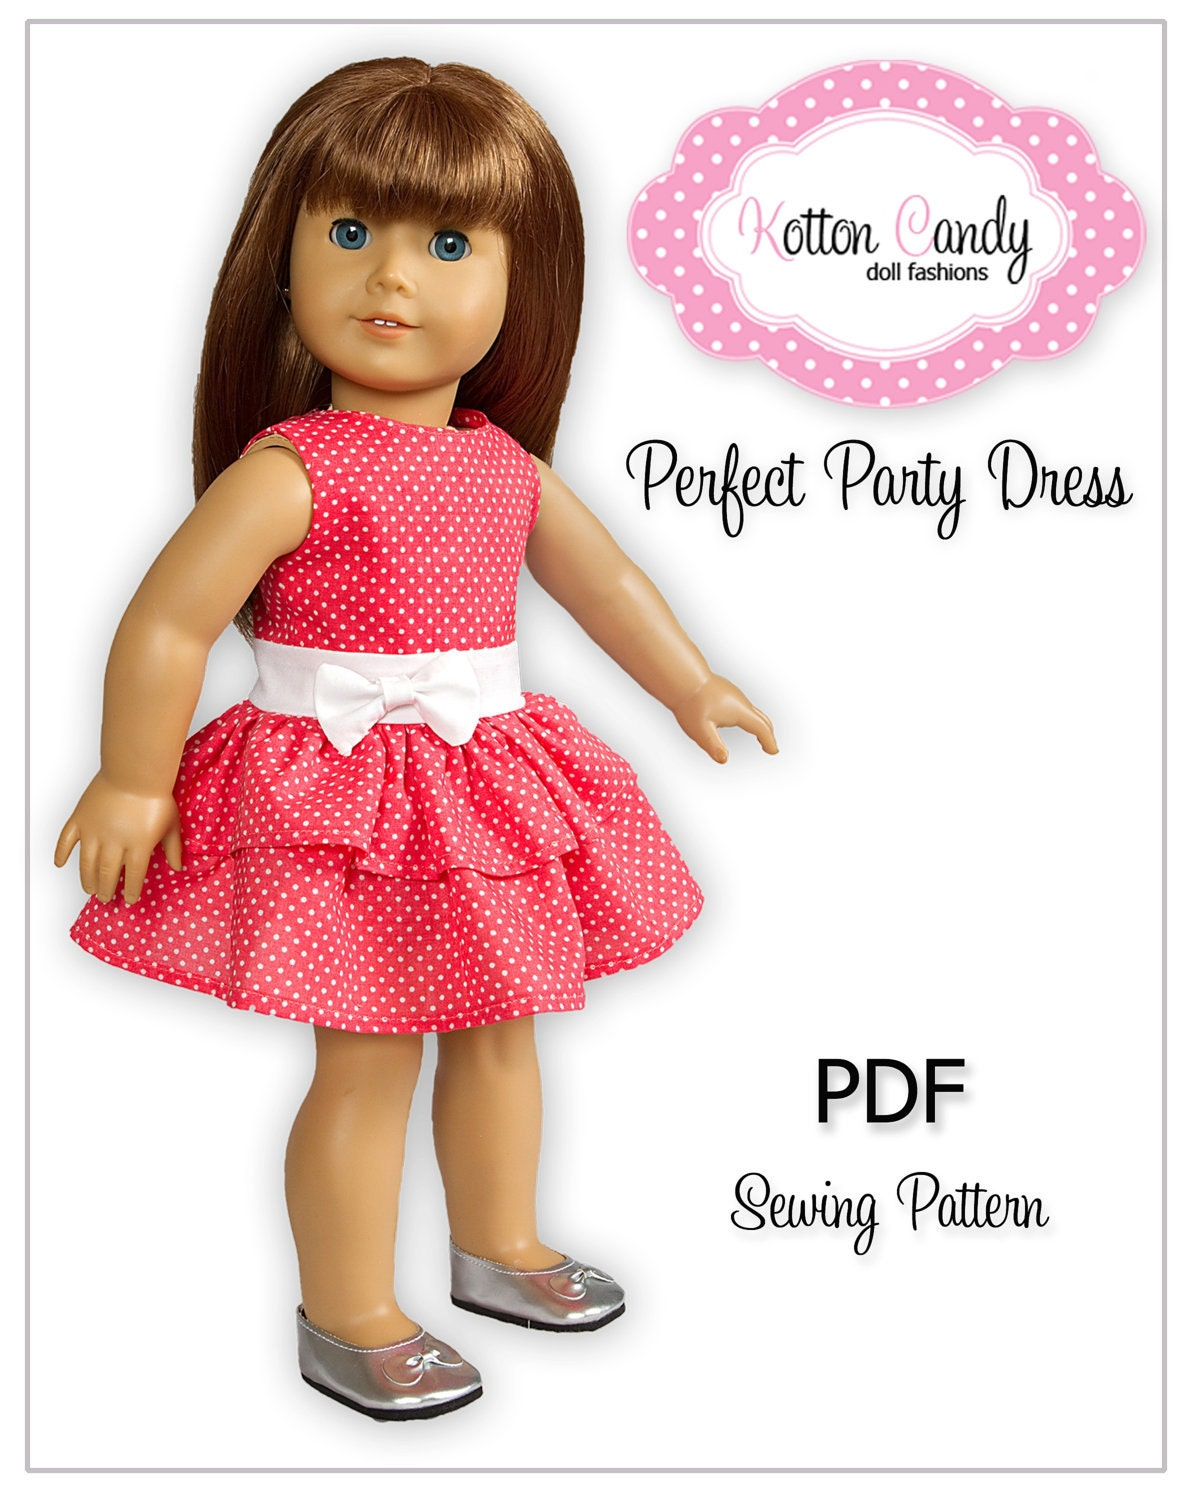 Sewing Pattern for 18 American Girl Doll by KottonCandyPatterns